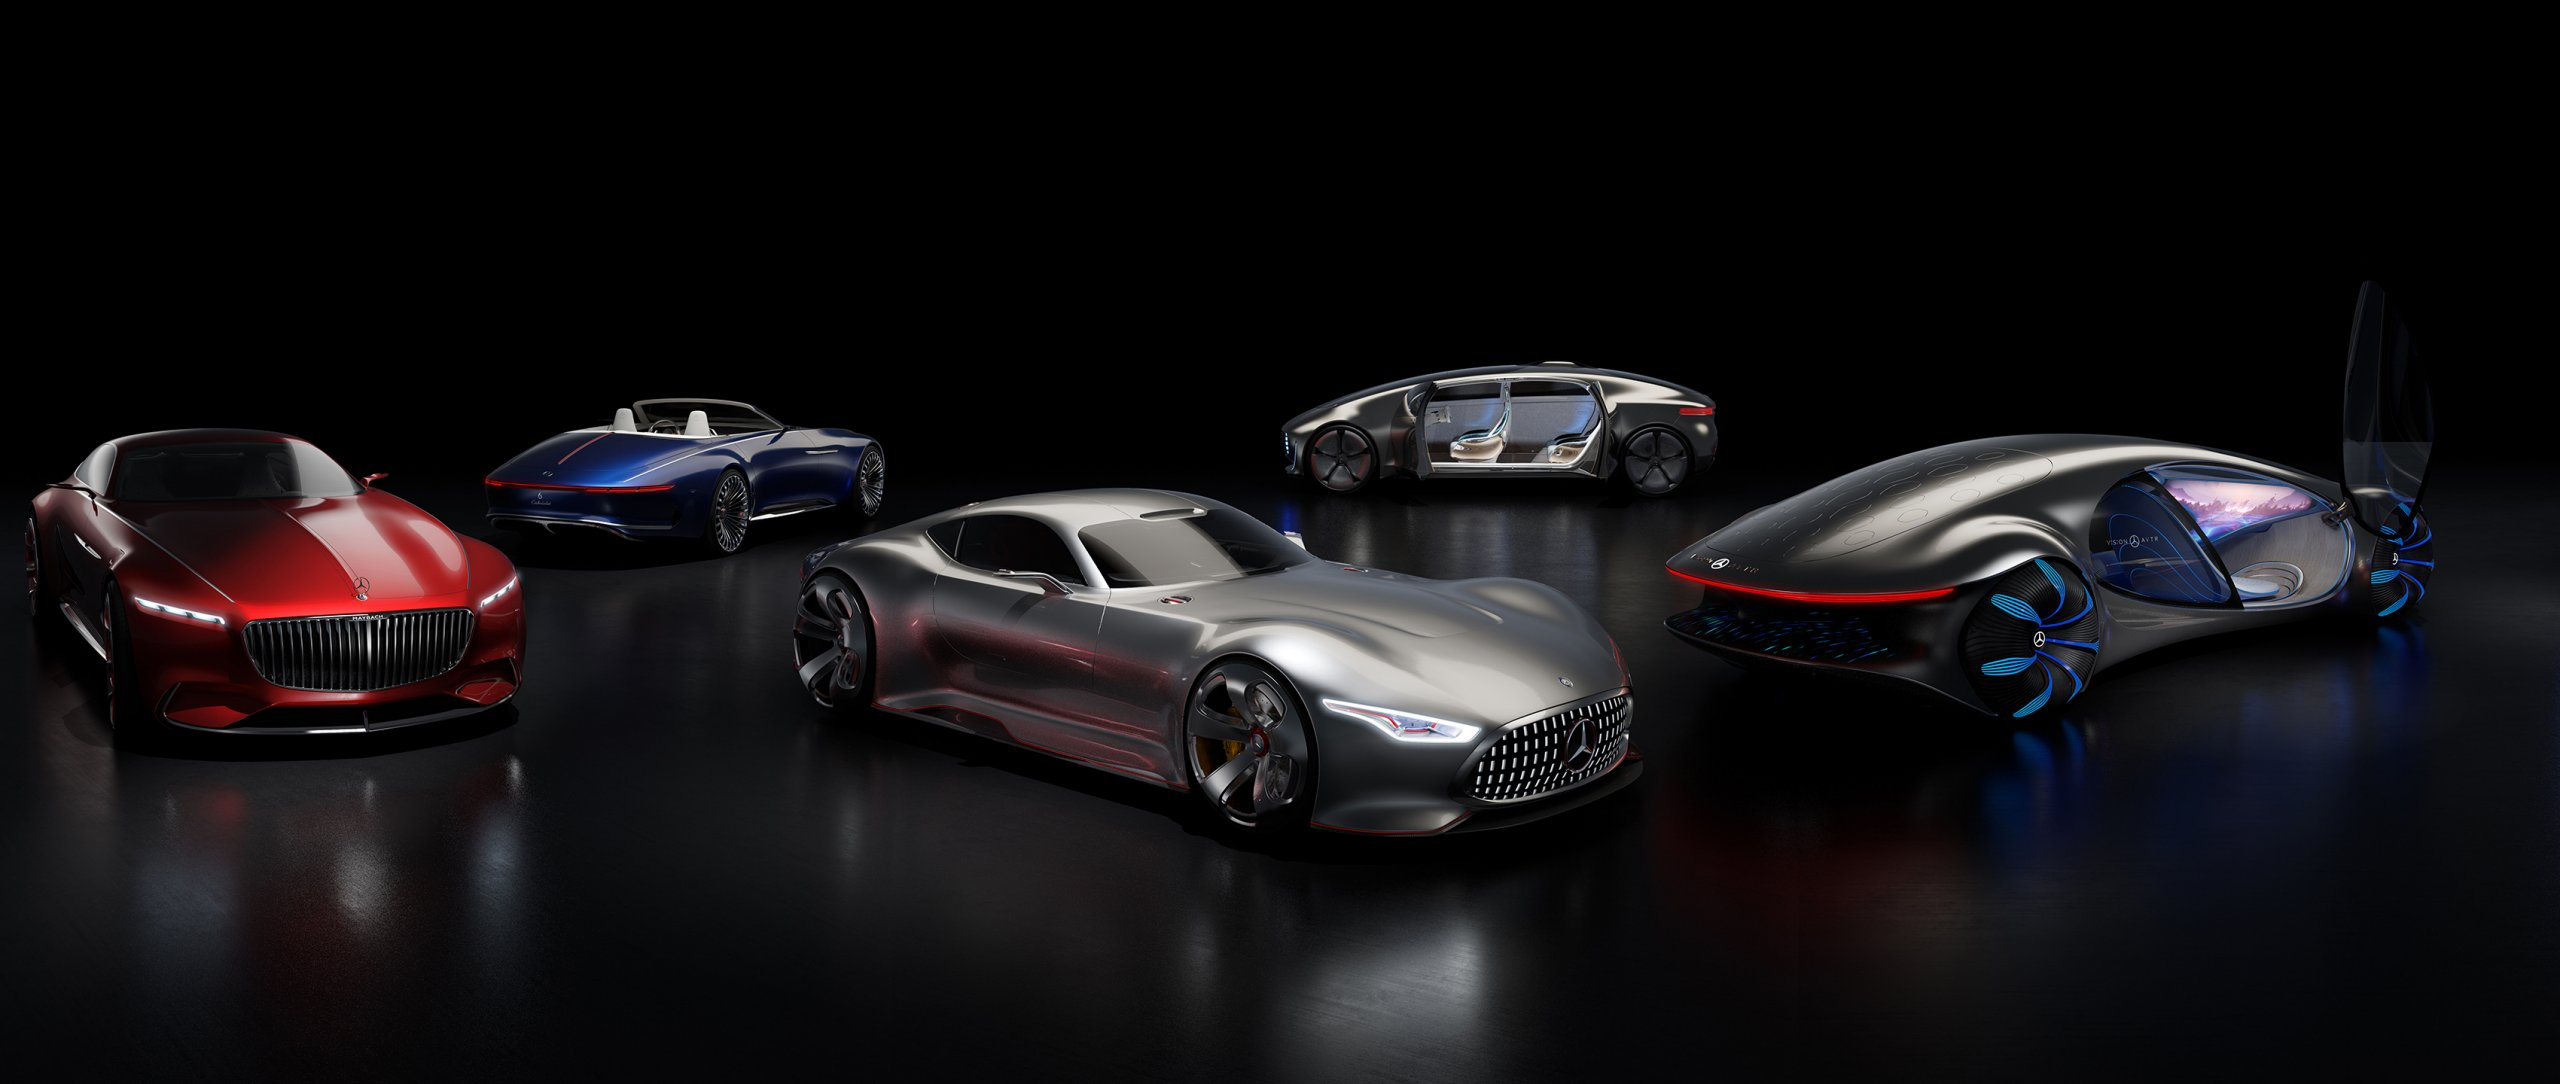 Mercedes-Benz Design: Sensual Purity and Modern Luxury.